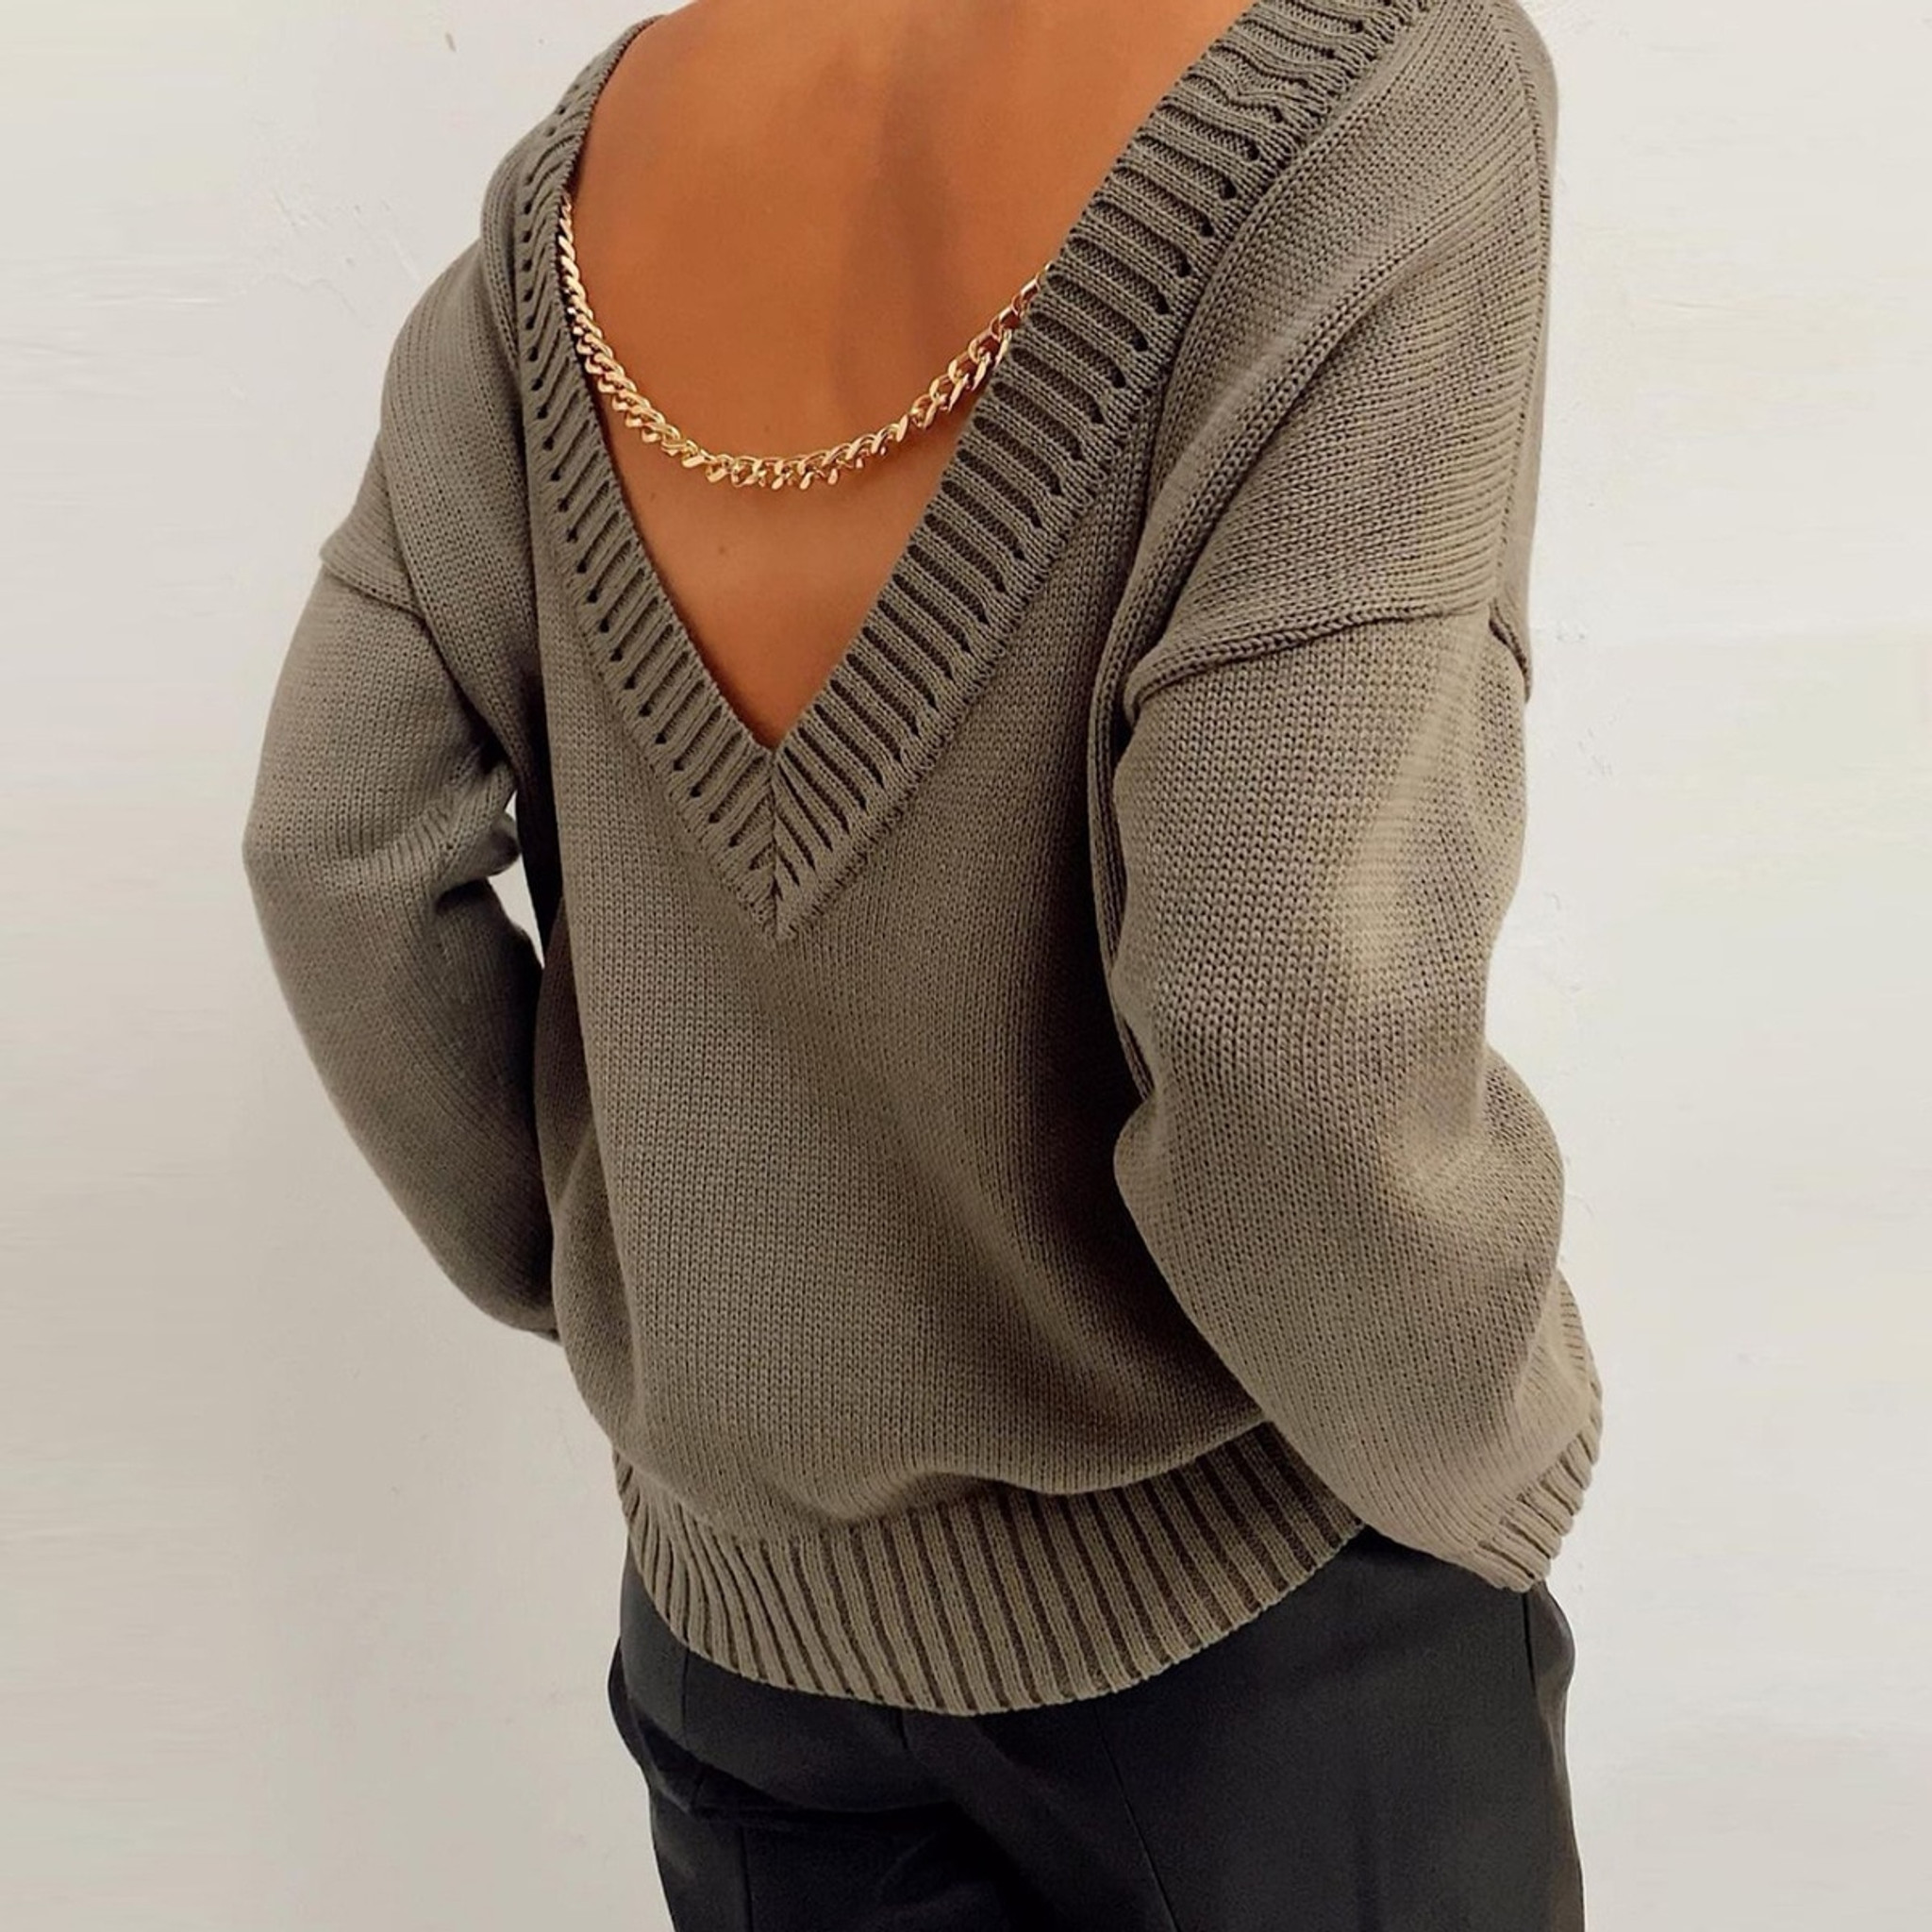 Chained Up Sweater